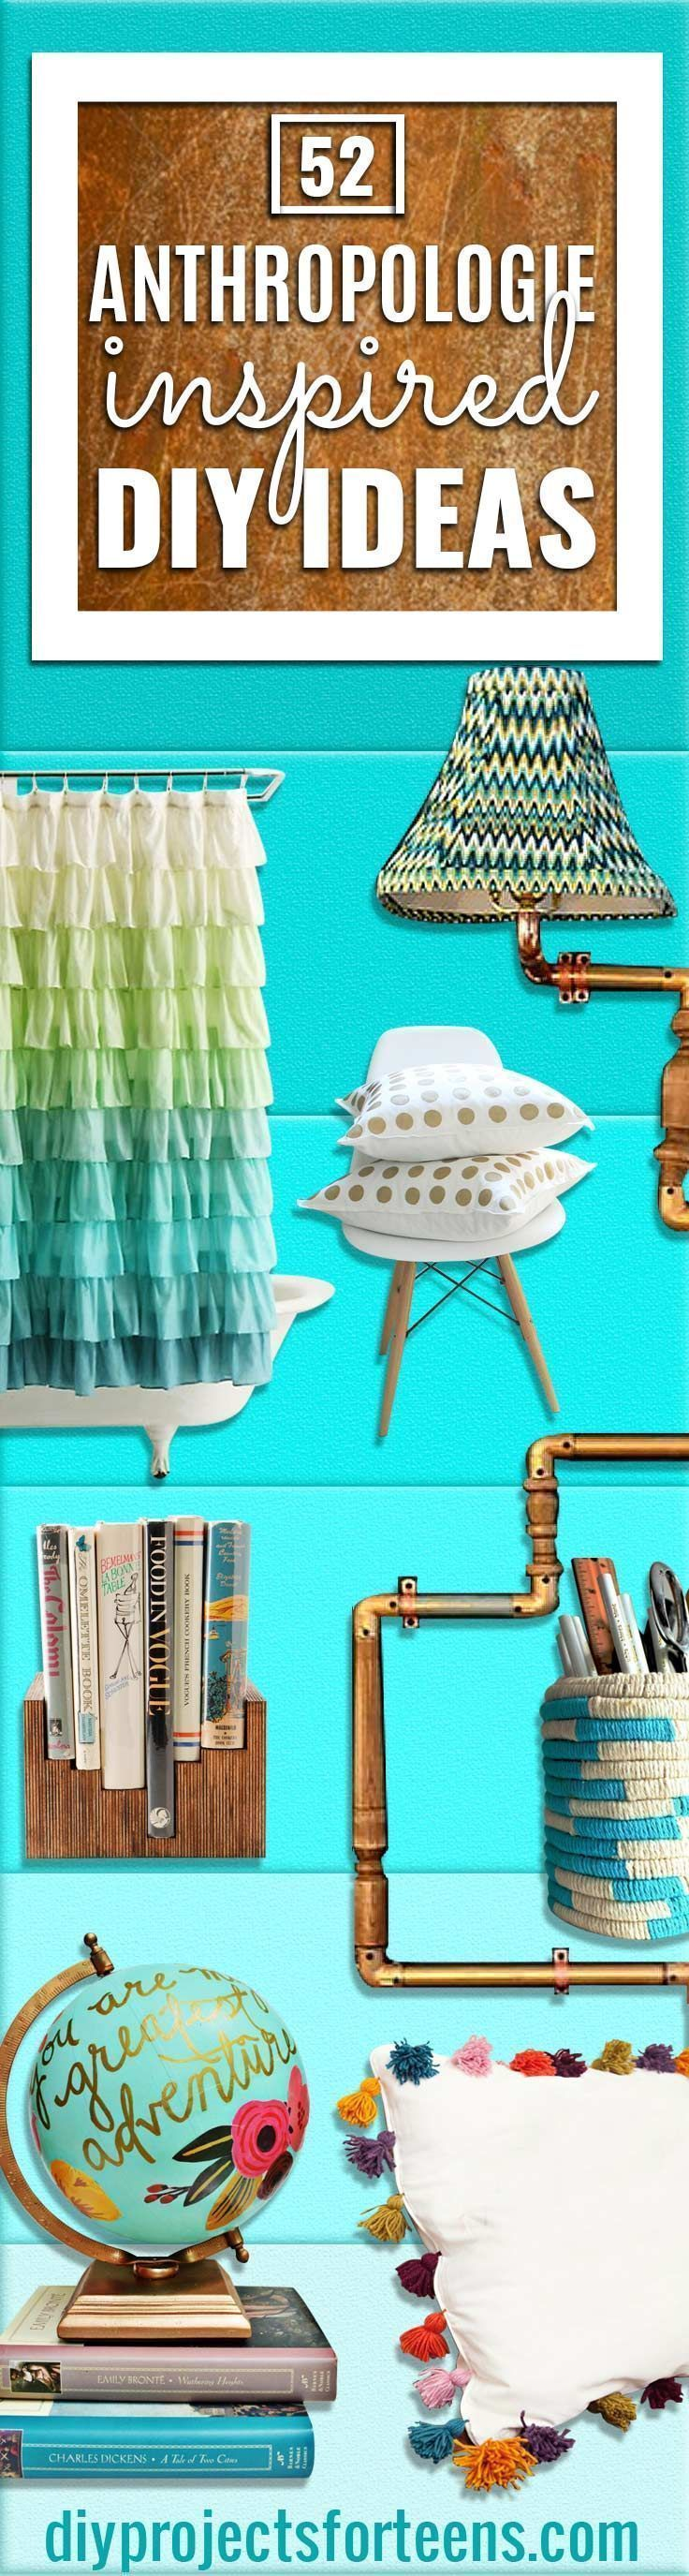 Anthropologie DIY Hacks, Clothes, Sewing Projects and Jewelry Fashion - Pillows, Bedding and Curtains - Tables and furniture - Mugs and Kitchen Decorations - DIY Room Decor and Cool Ideas for the Home | DIY Projects and Crafts for Teens diyprojects